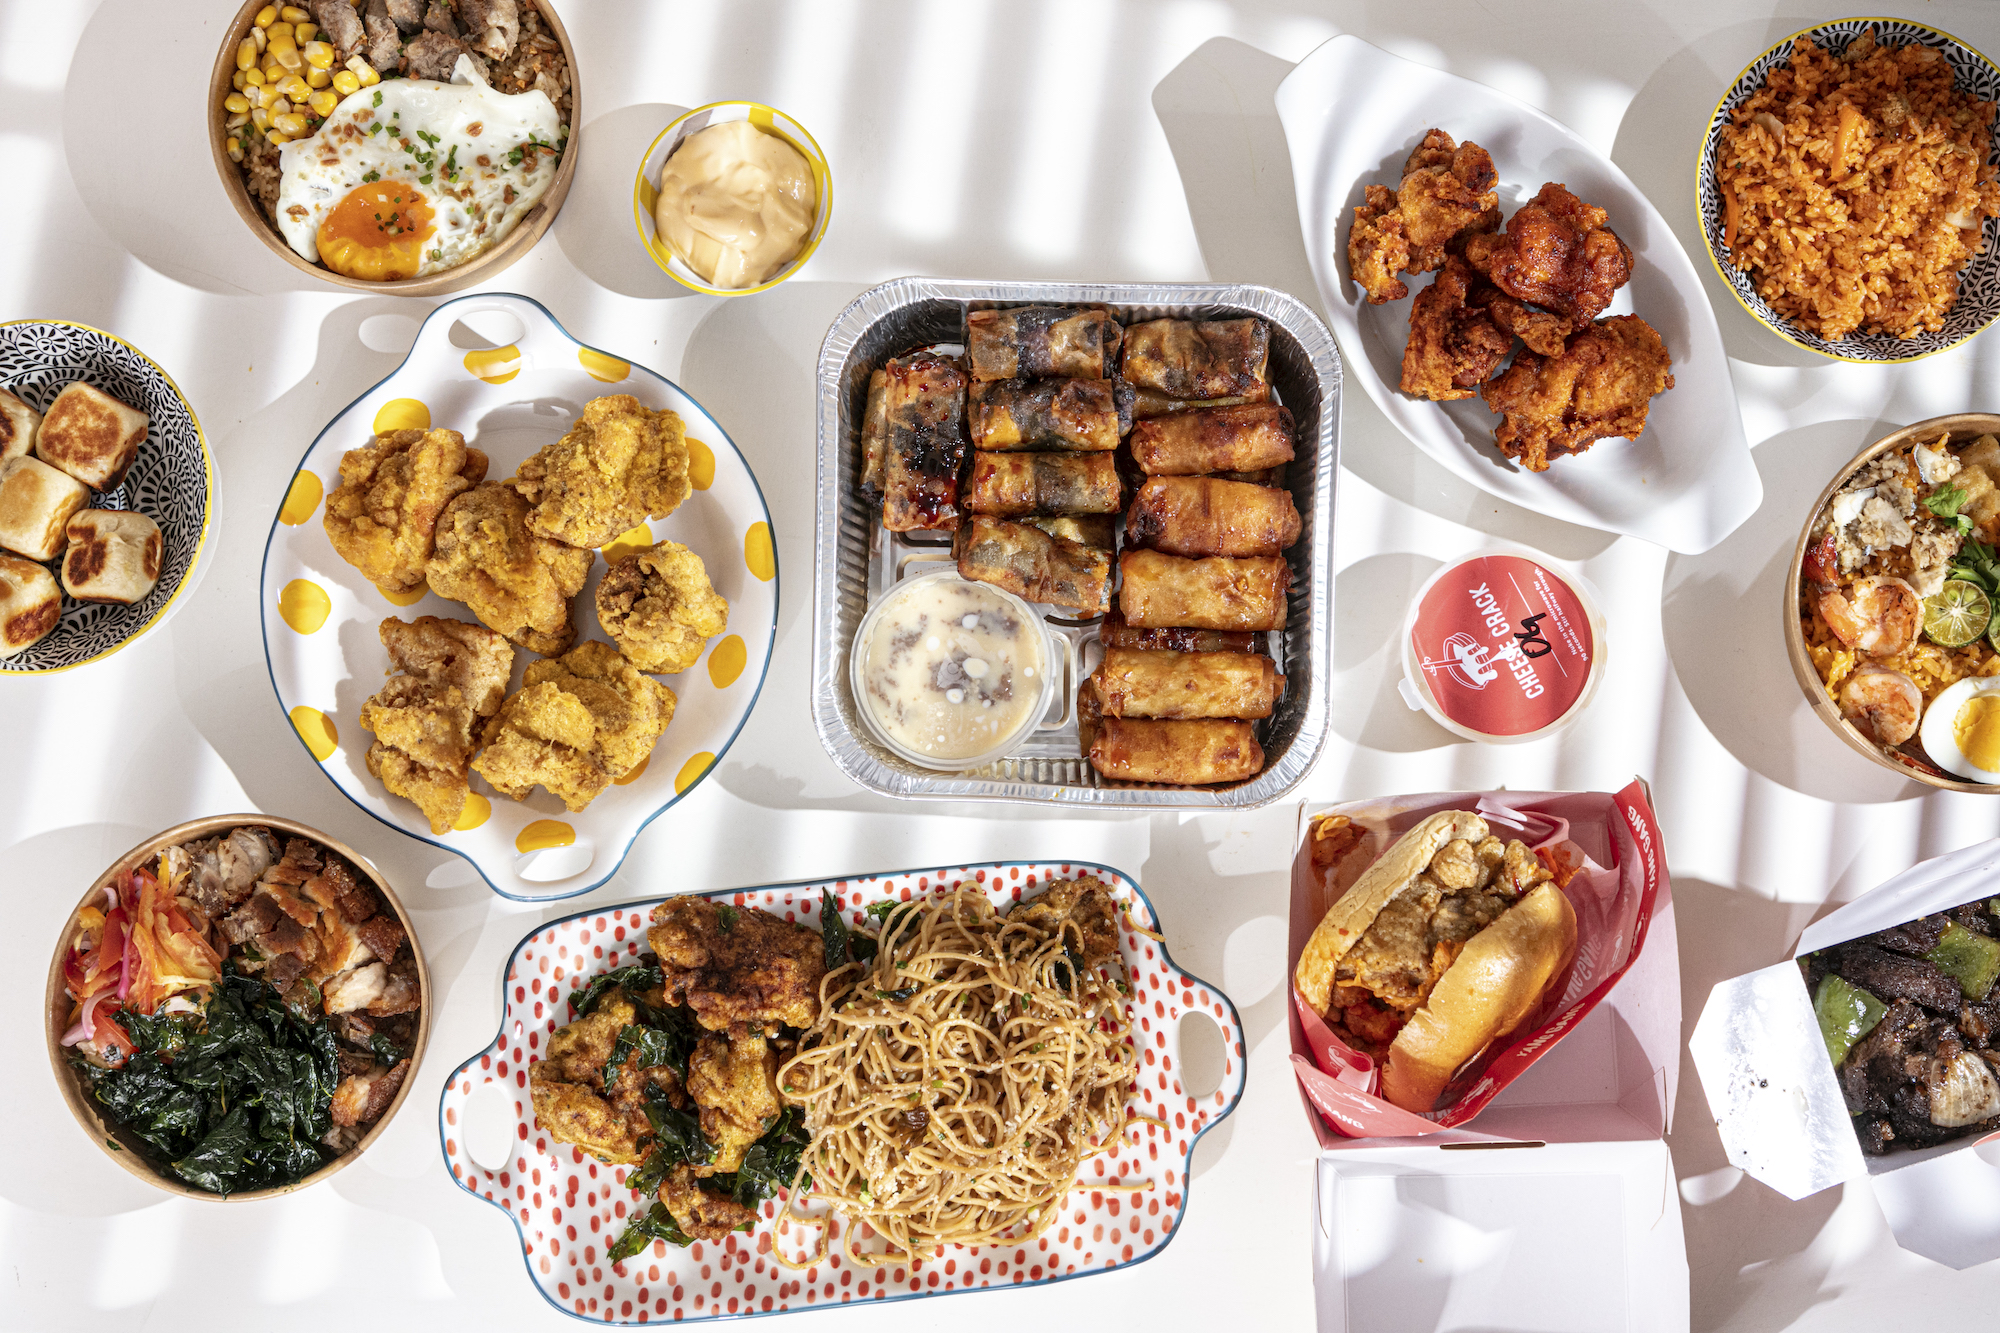 MadEats was definitely a response to new consumer behavior: Filipinos ordering through the likes of Grab and Foodpanda